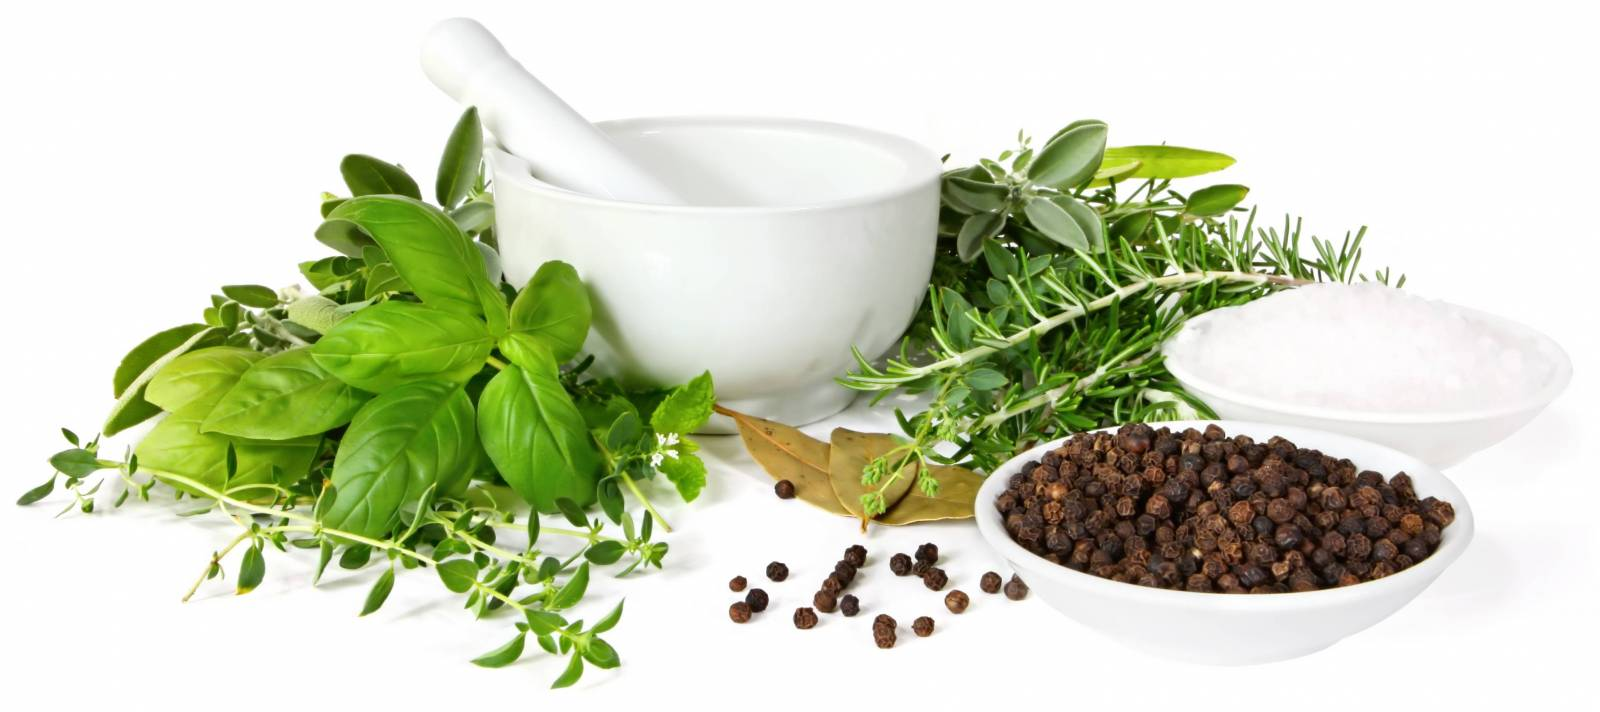 bigstock-Mortar-And-Pestle-With-Herbs-A-2516414-e1417462442397